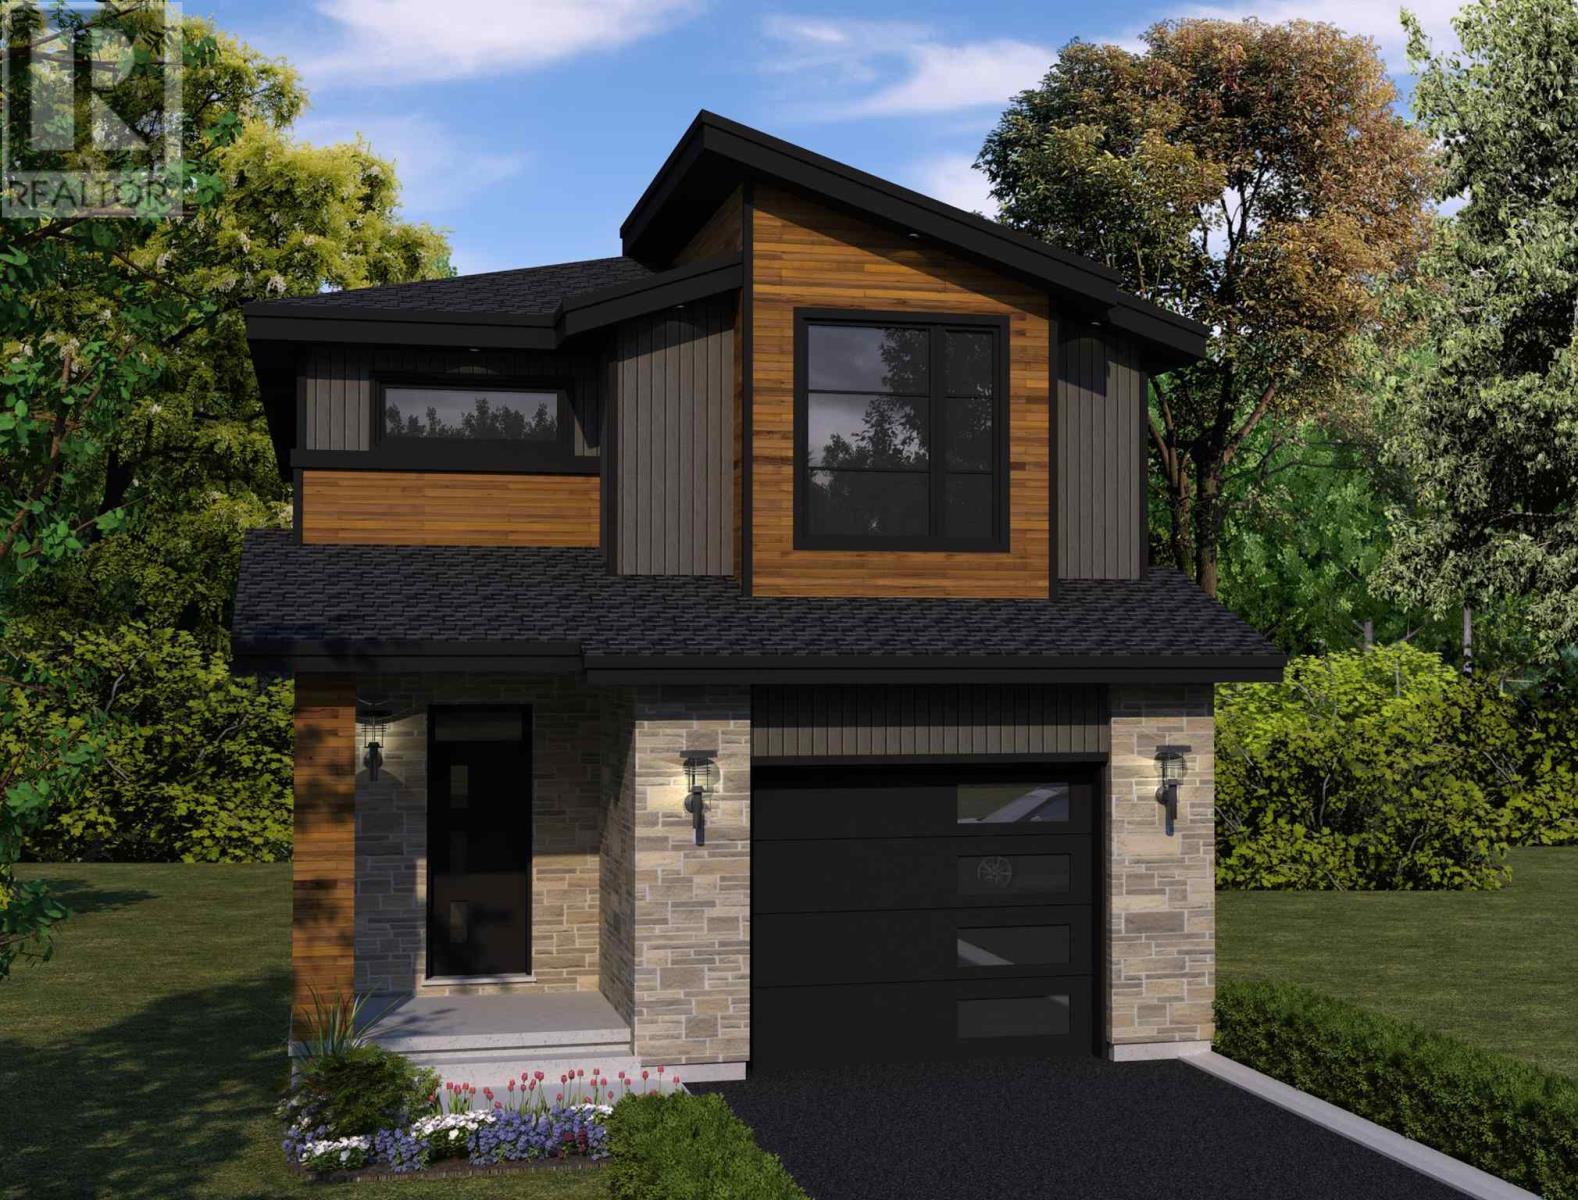 Property Listing: 26 Erie Ct, Amherstview, Ontario